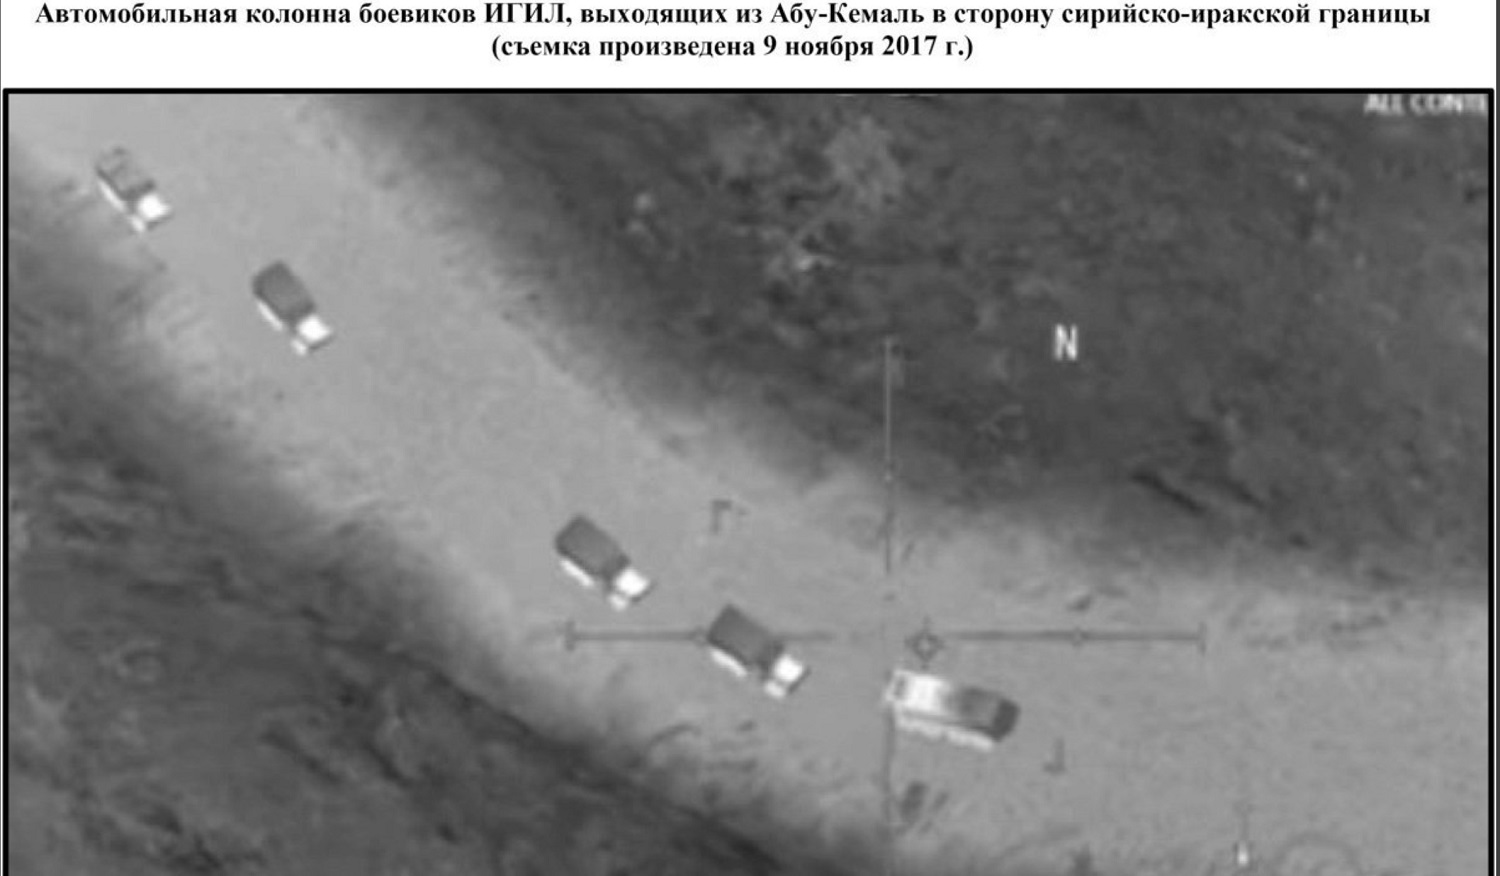 After Accusing US Of Colluding With ISIS, Russia Posts Video Game Footage As 'Irrefutable' Proof